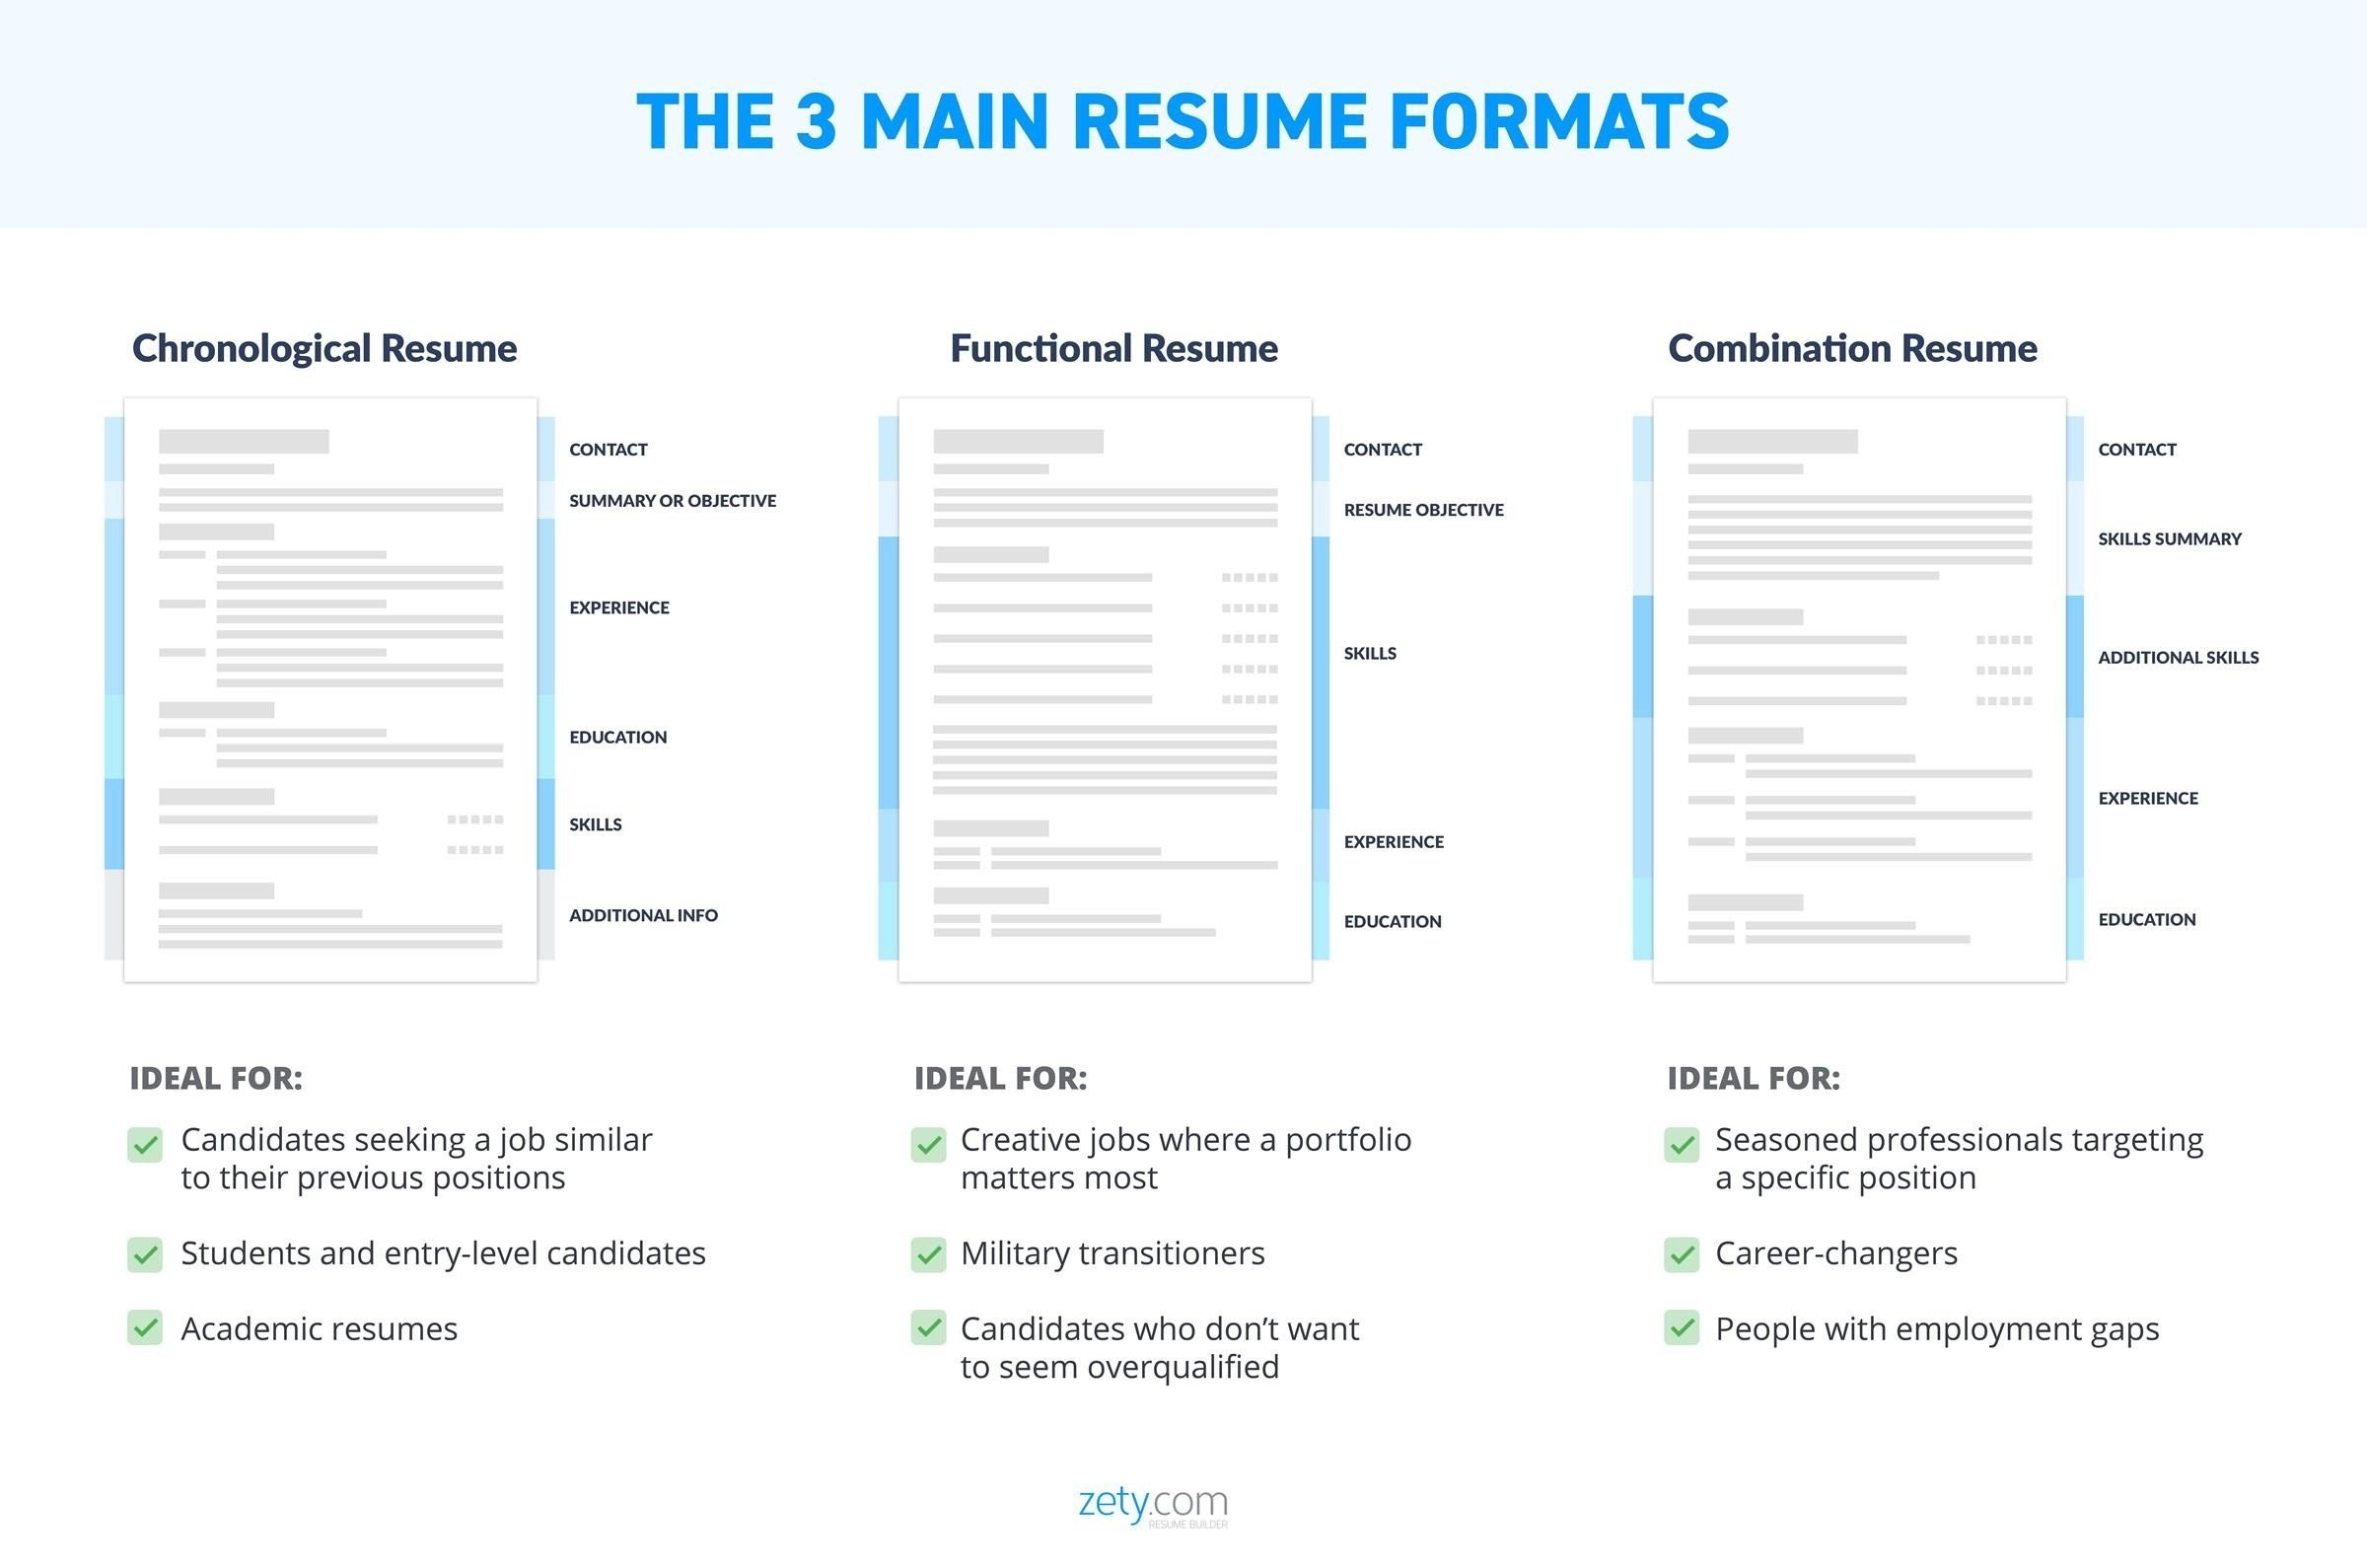 best resume format professional samples for job interview formats writers toronto reviews Resume Resume Format For Job Interview